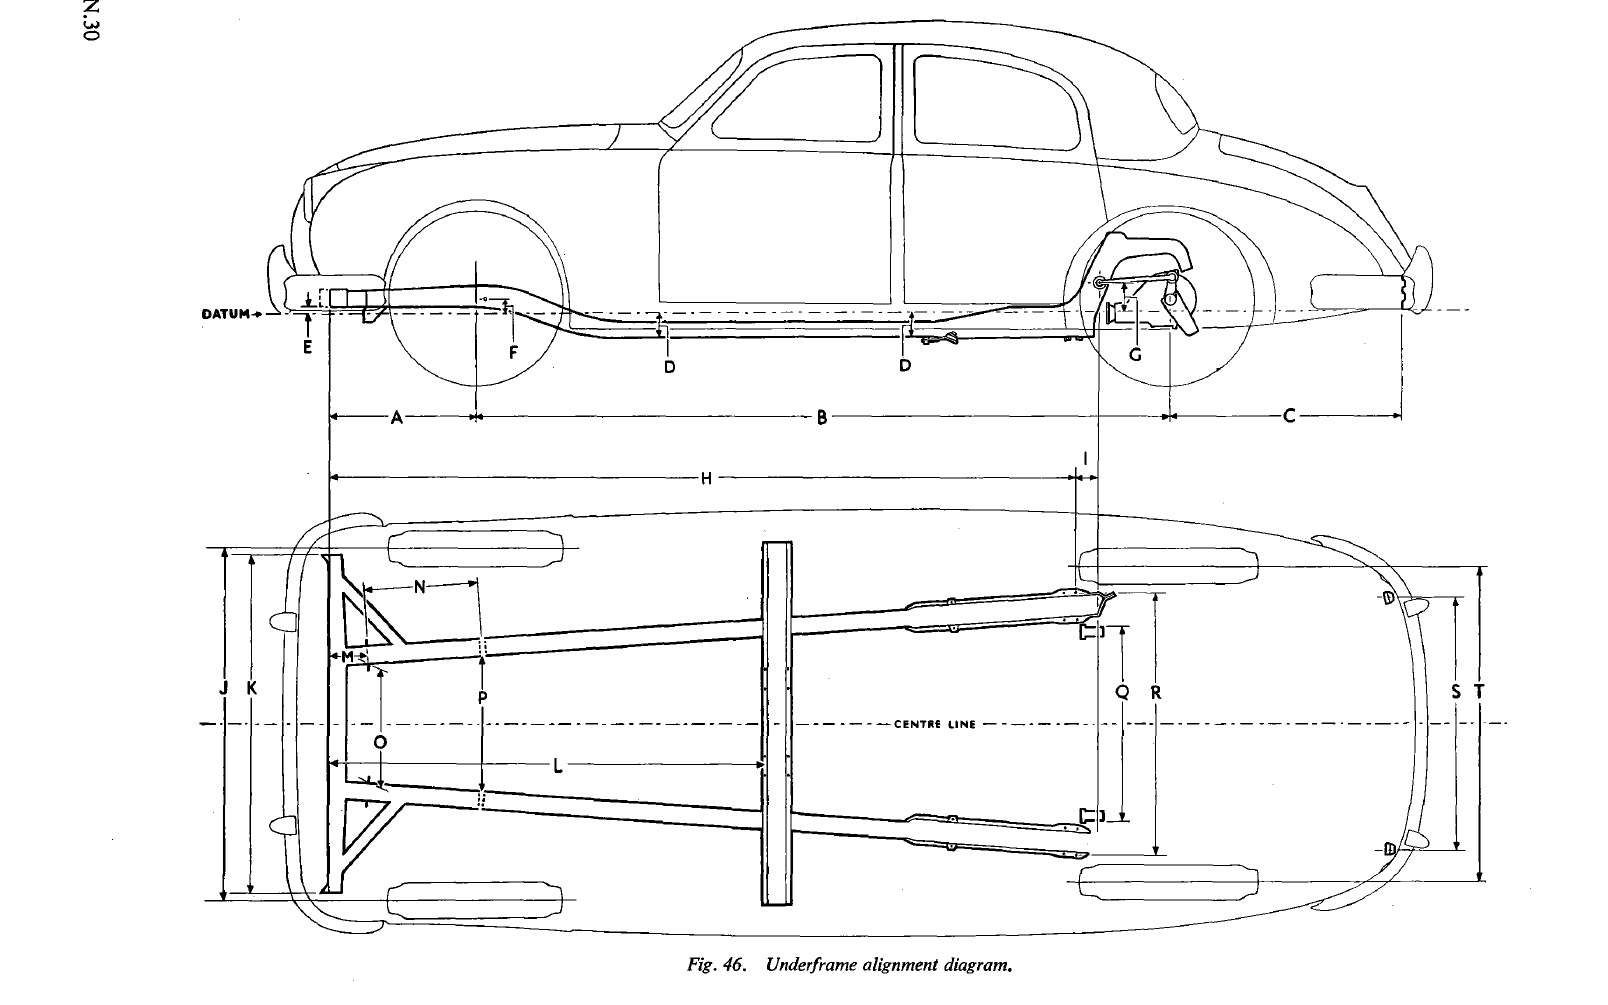 Mark 2 Track Dimensions - Saloons